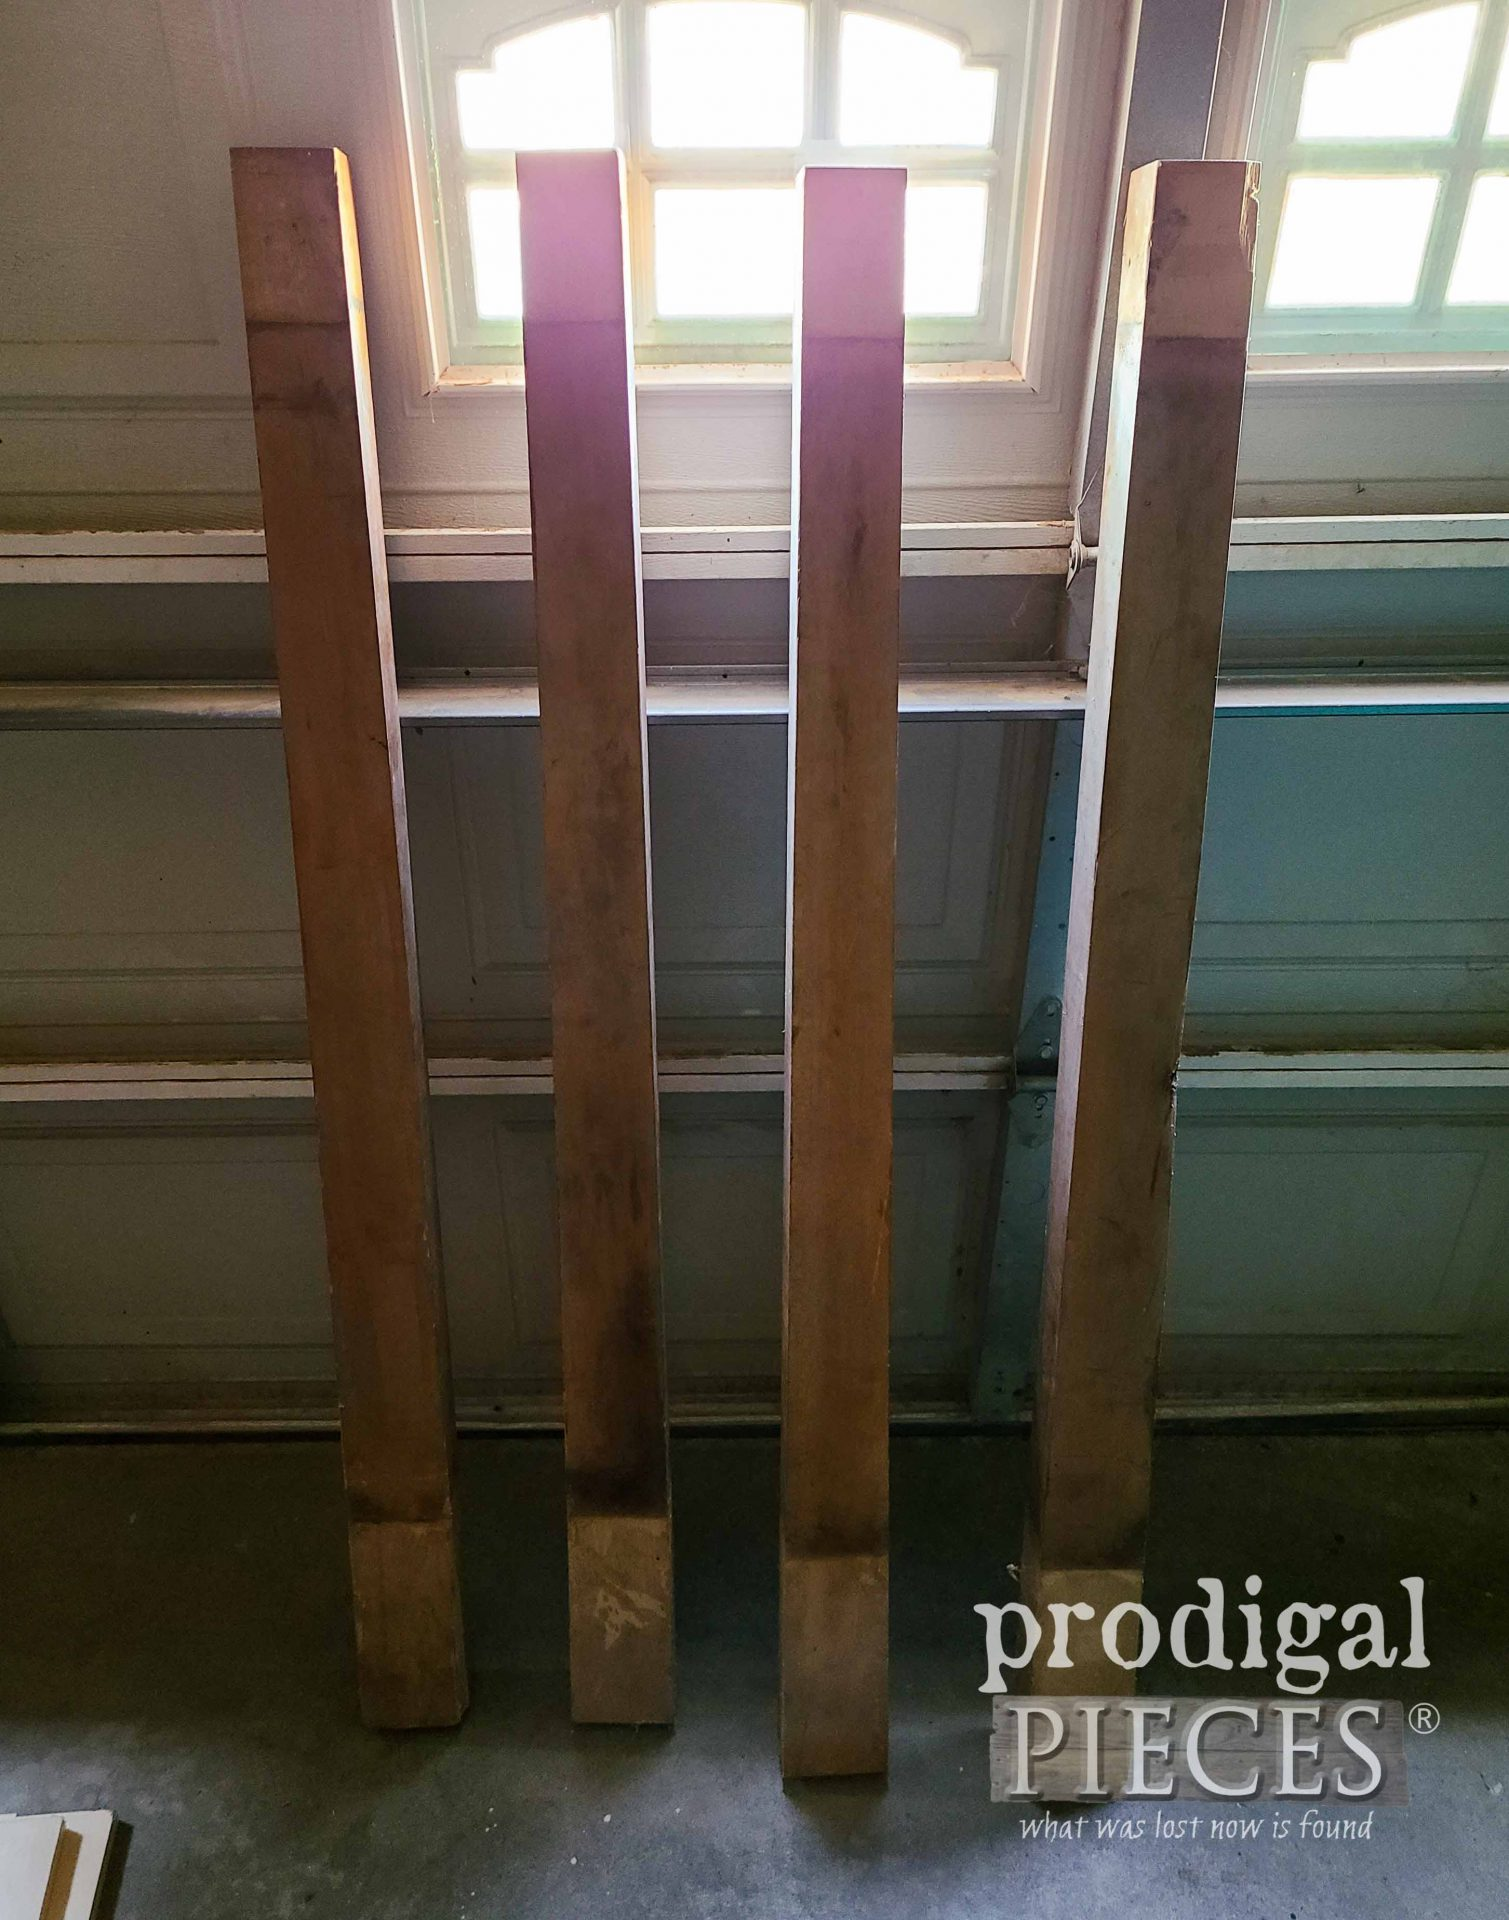 Upright Piano Parts for Reclaimed Coffee Table   prodigalpieces.com #prodigalpieces